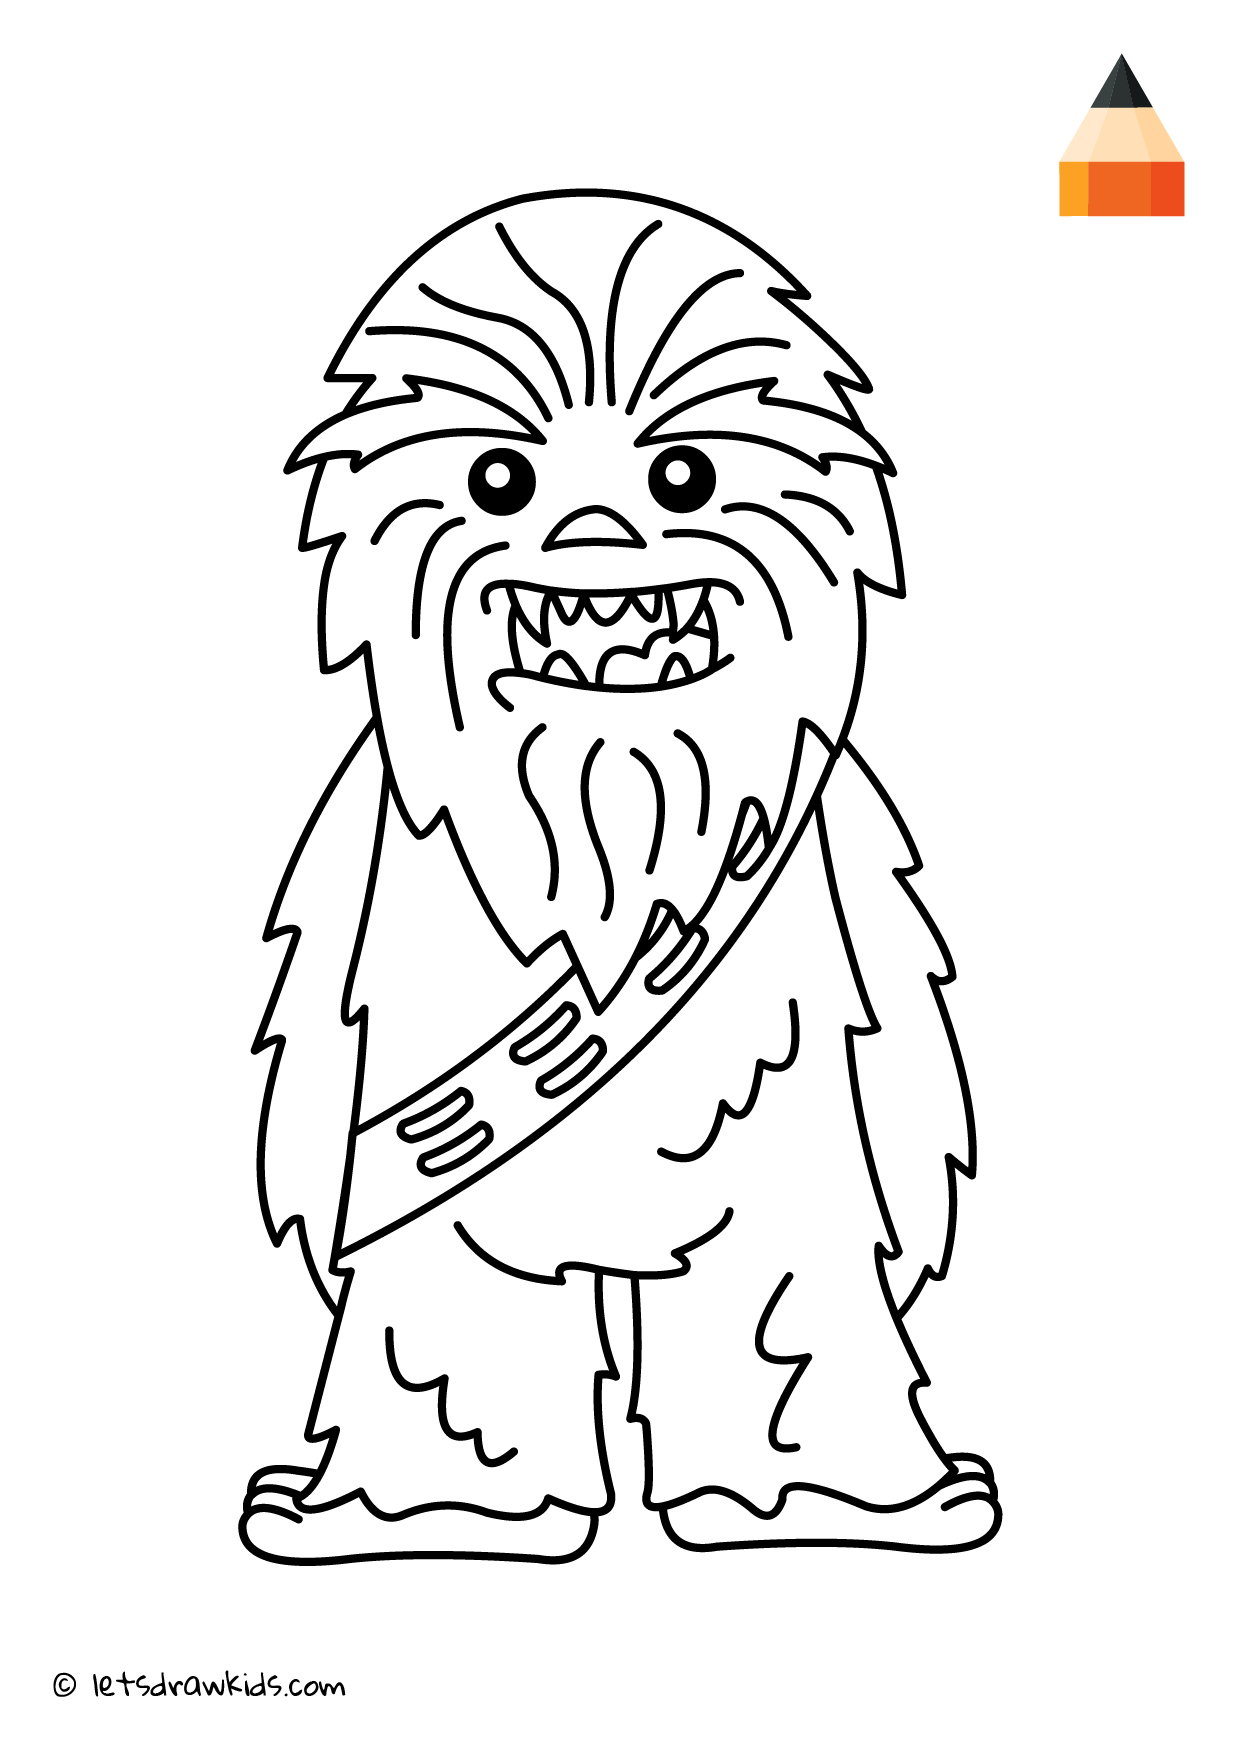 Coloring Page Chewbacca Star Wars Drawings Fnaf Coloring Pages Coloring Pages